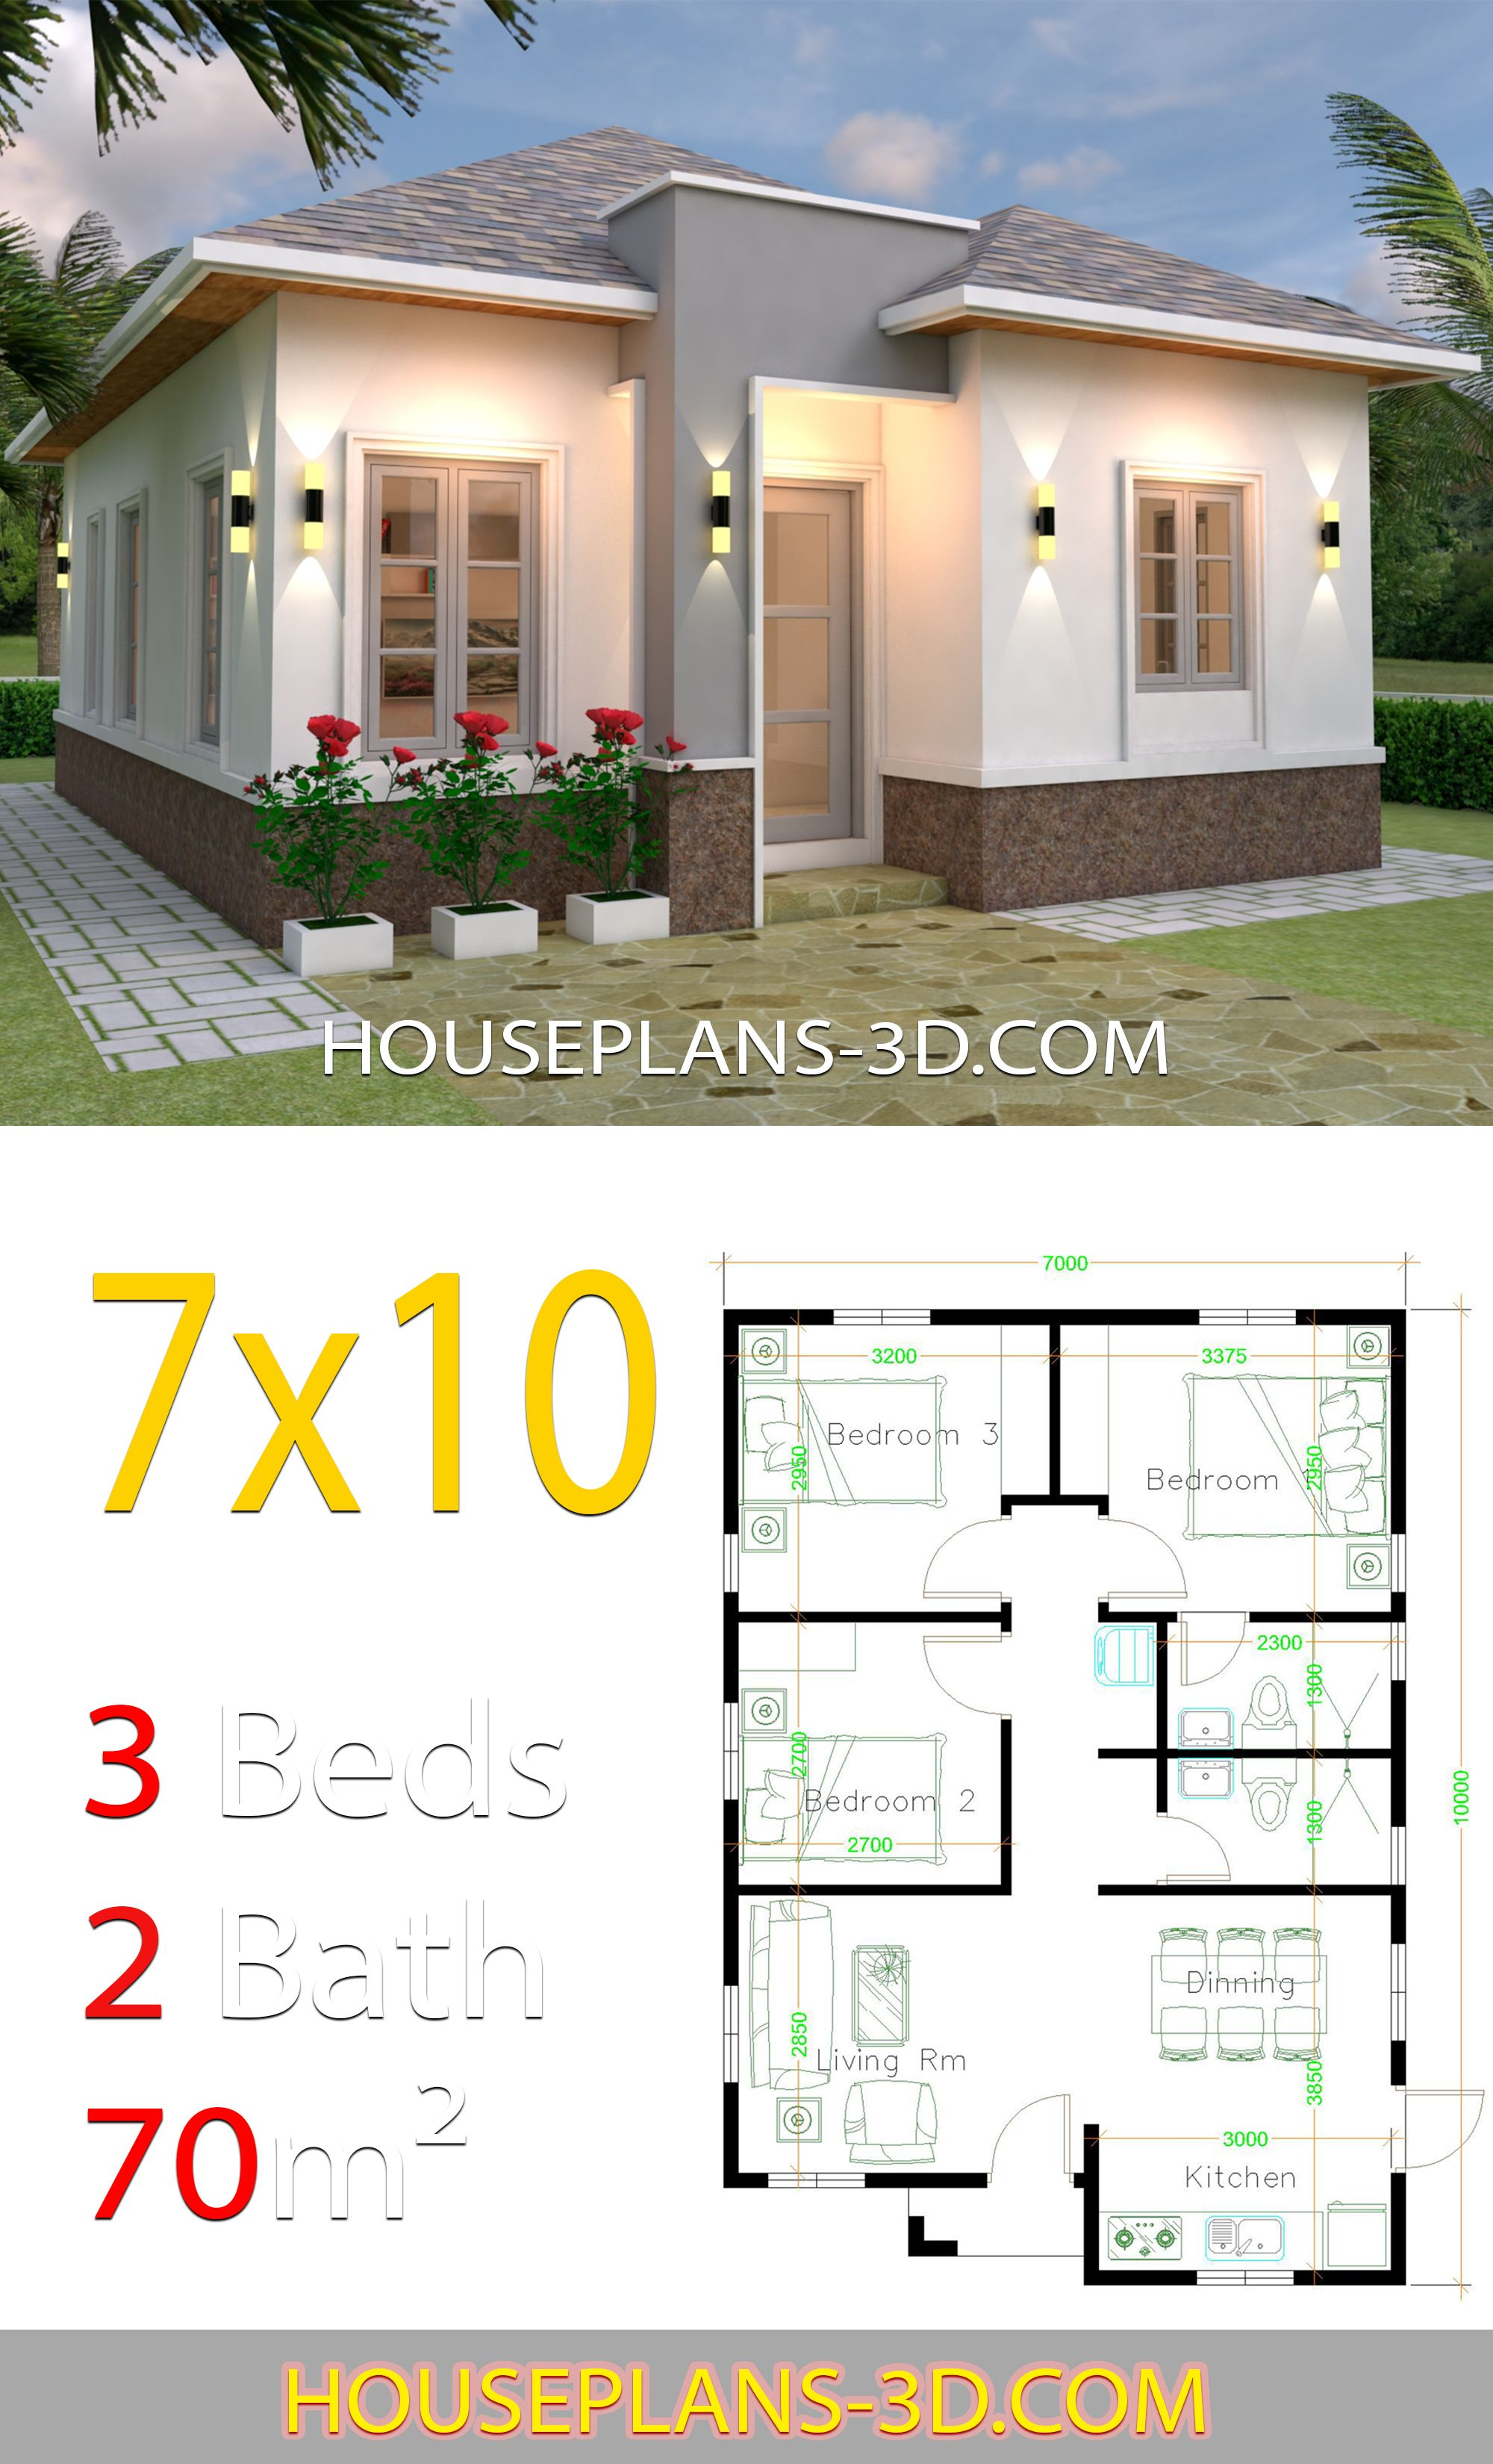 House Design 7x10 With 3 Bedrooms Hip Roof House Plans 3d Architectural House Plans Flat Roof House Small House Design Plans